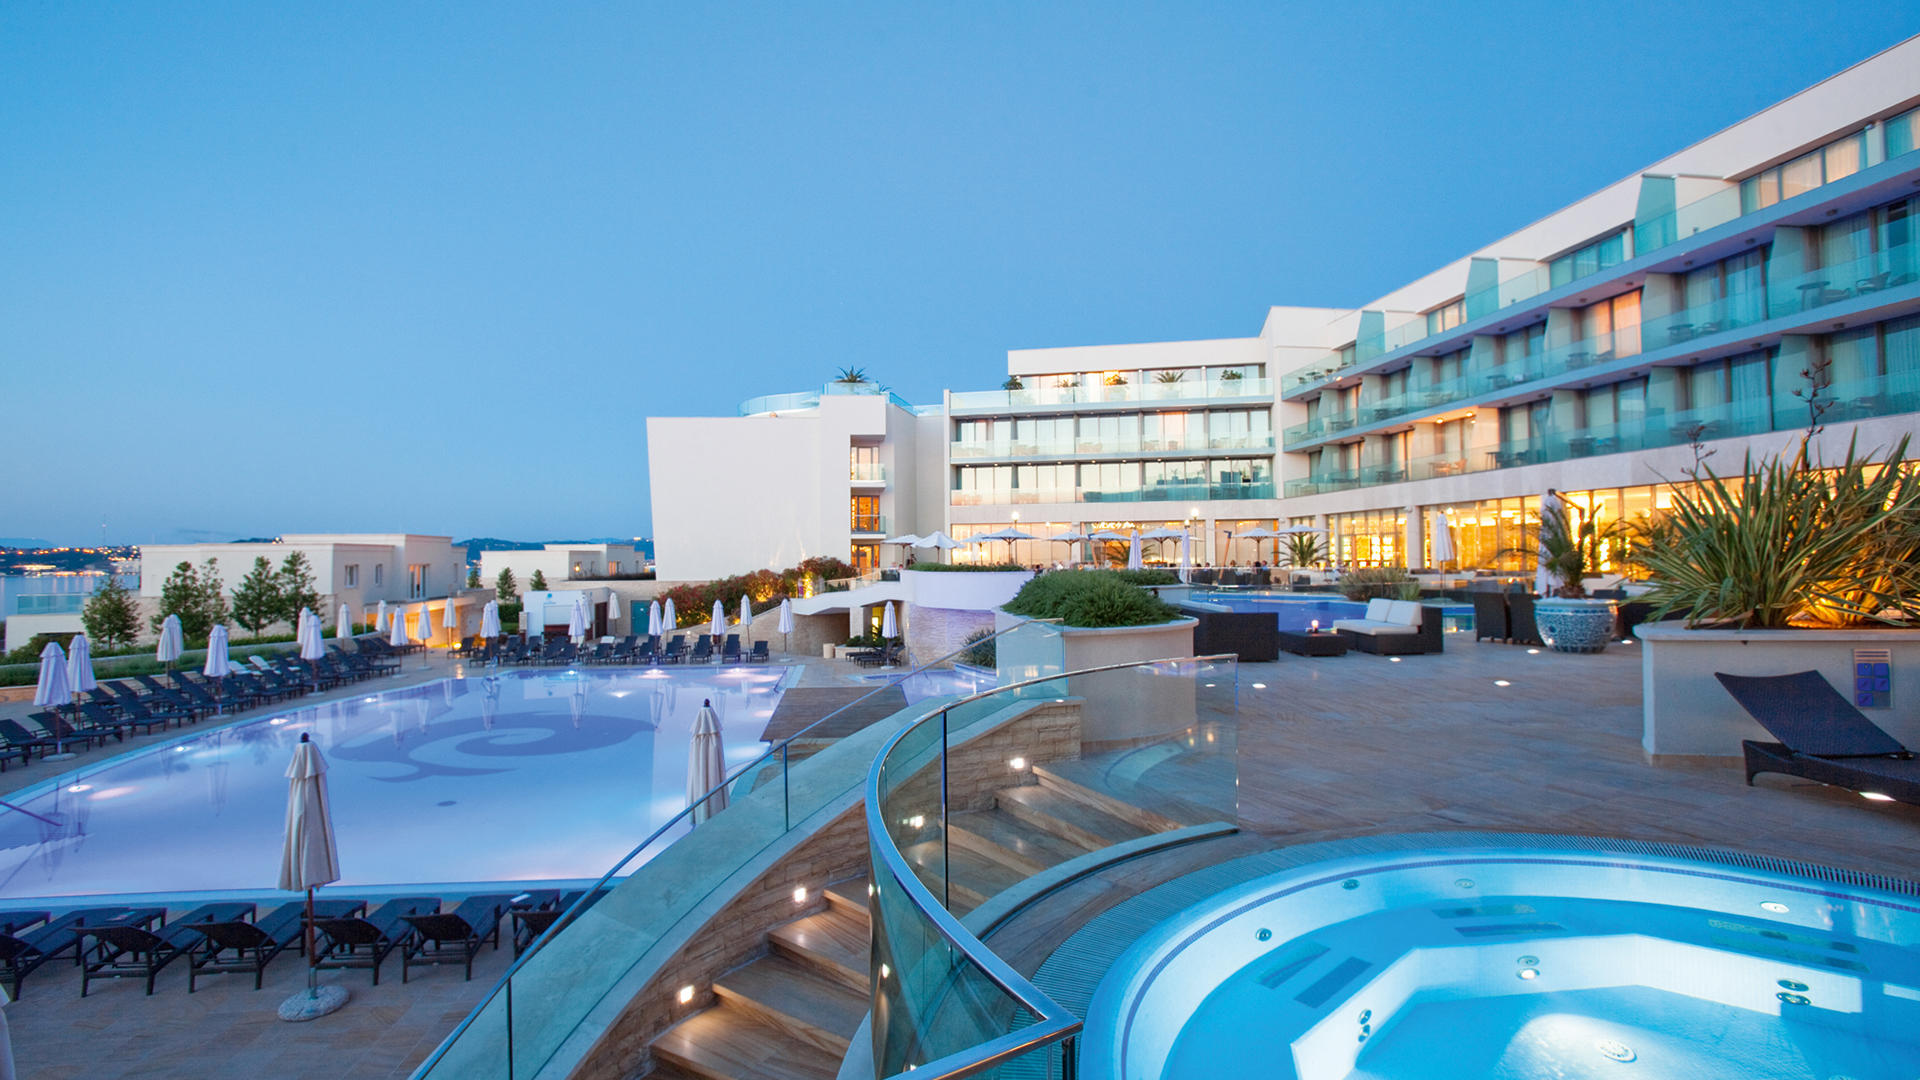 KempinskiAdriatic_Pool03